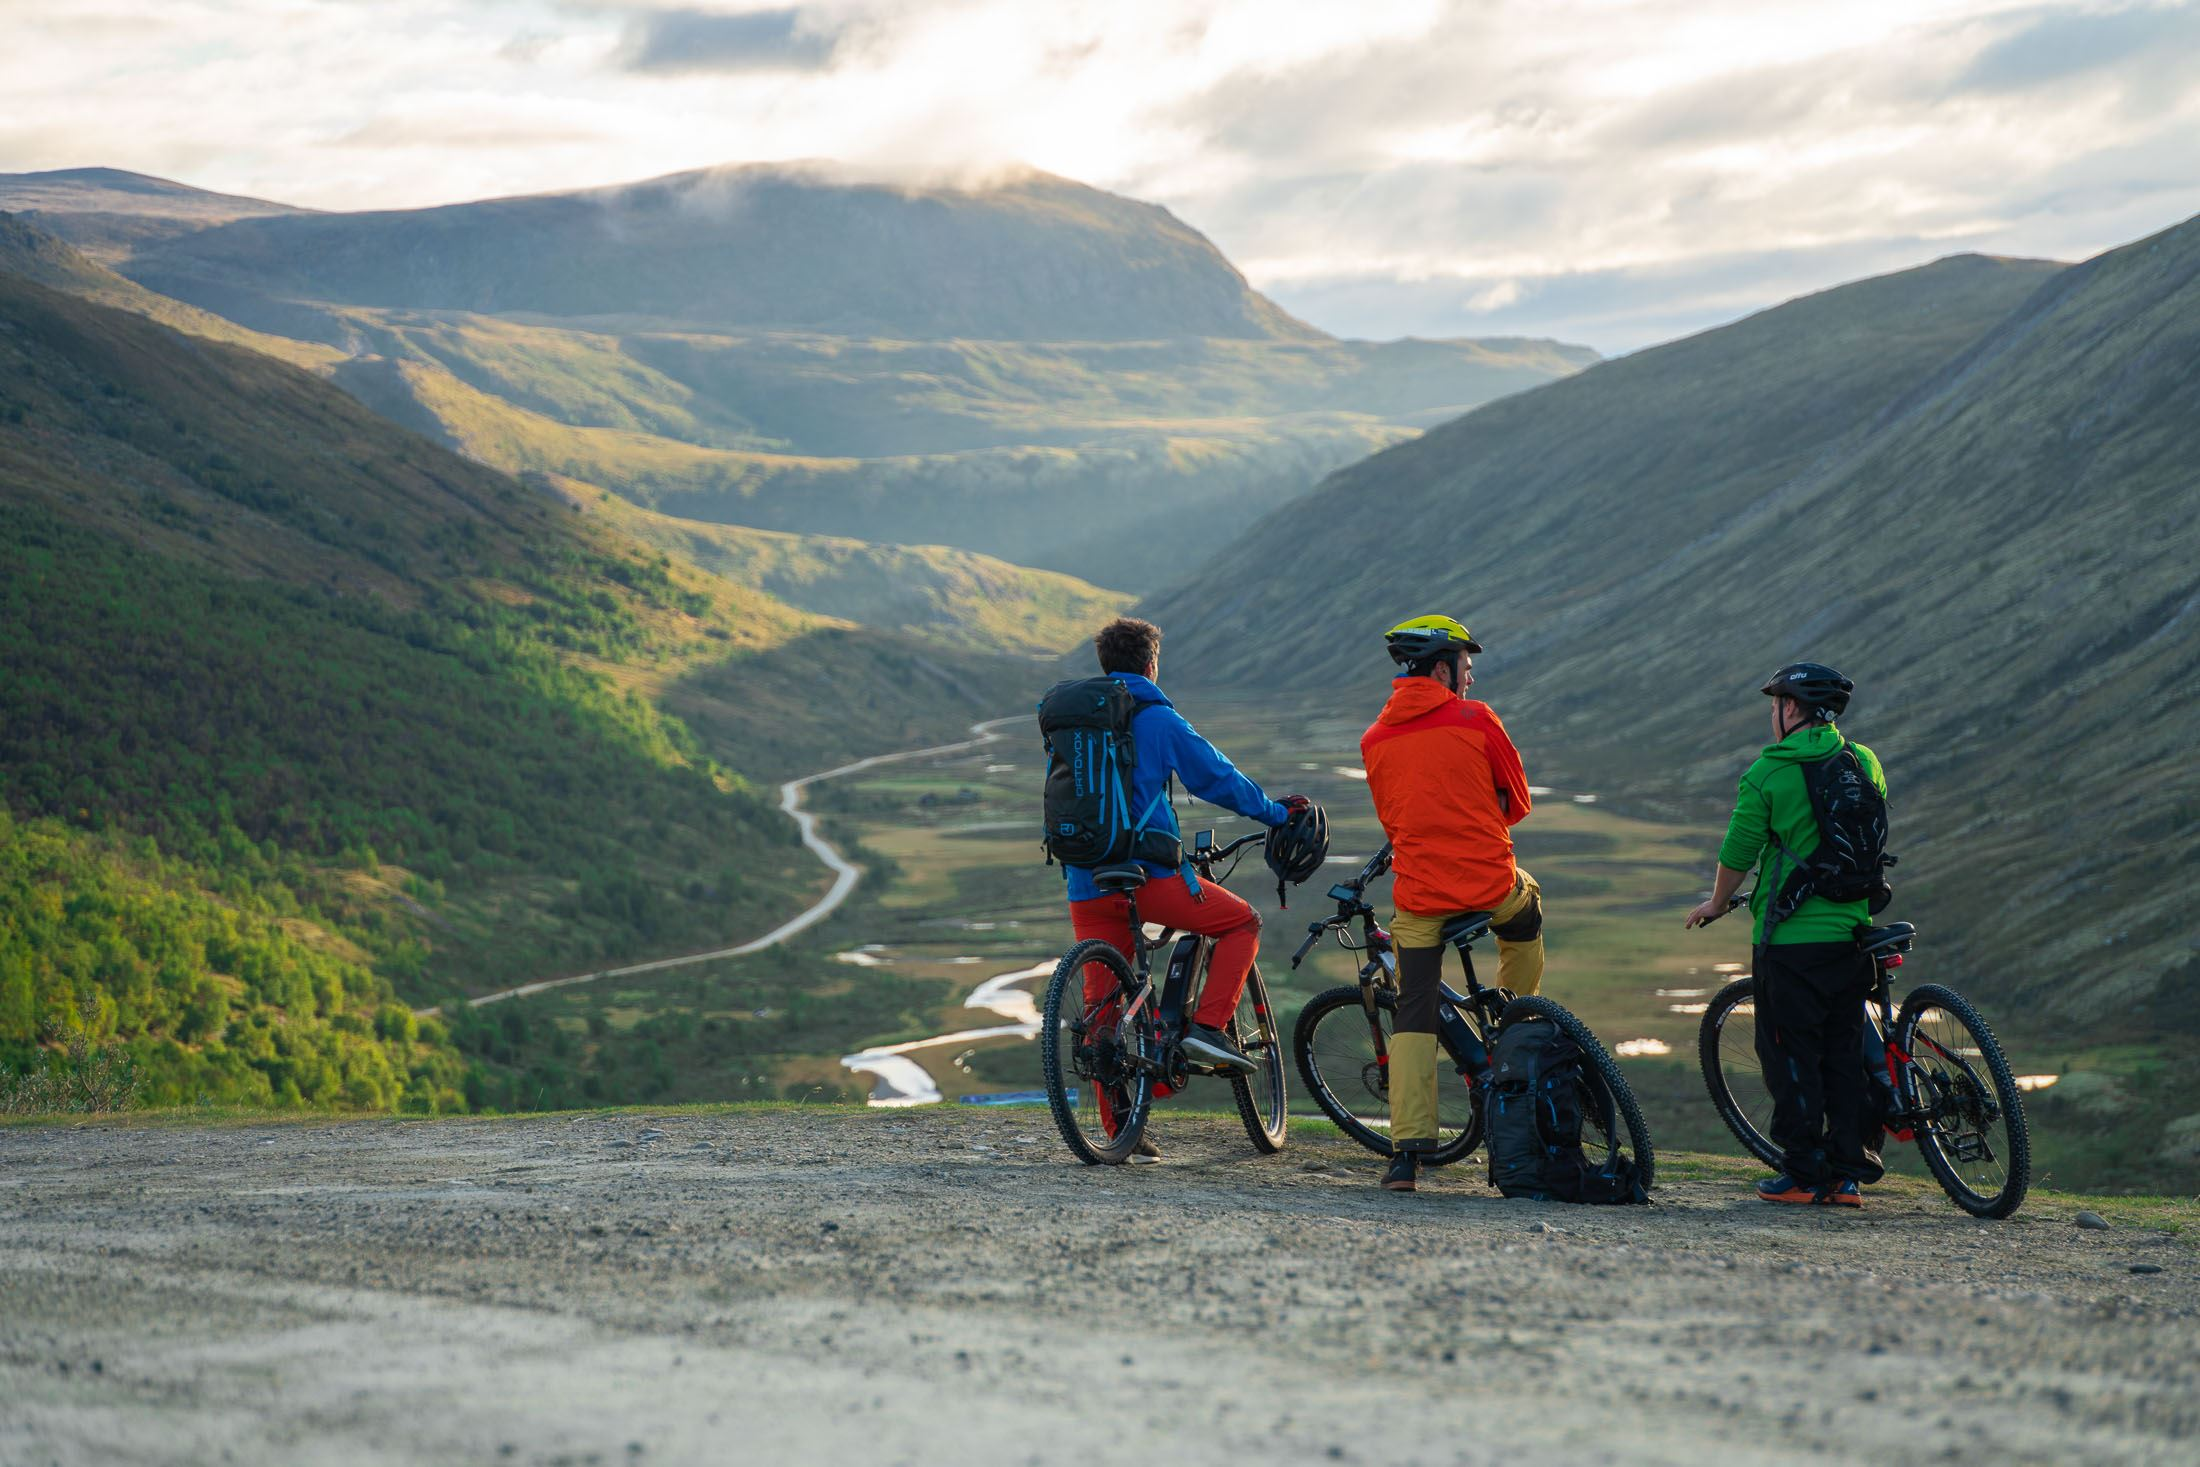 Foto: Yngve Ask/Mountains of Norway